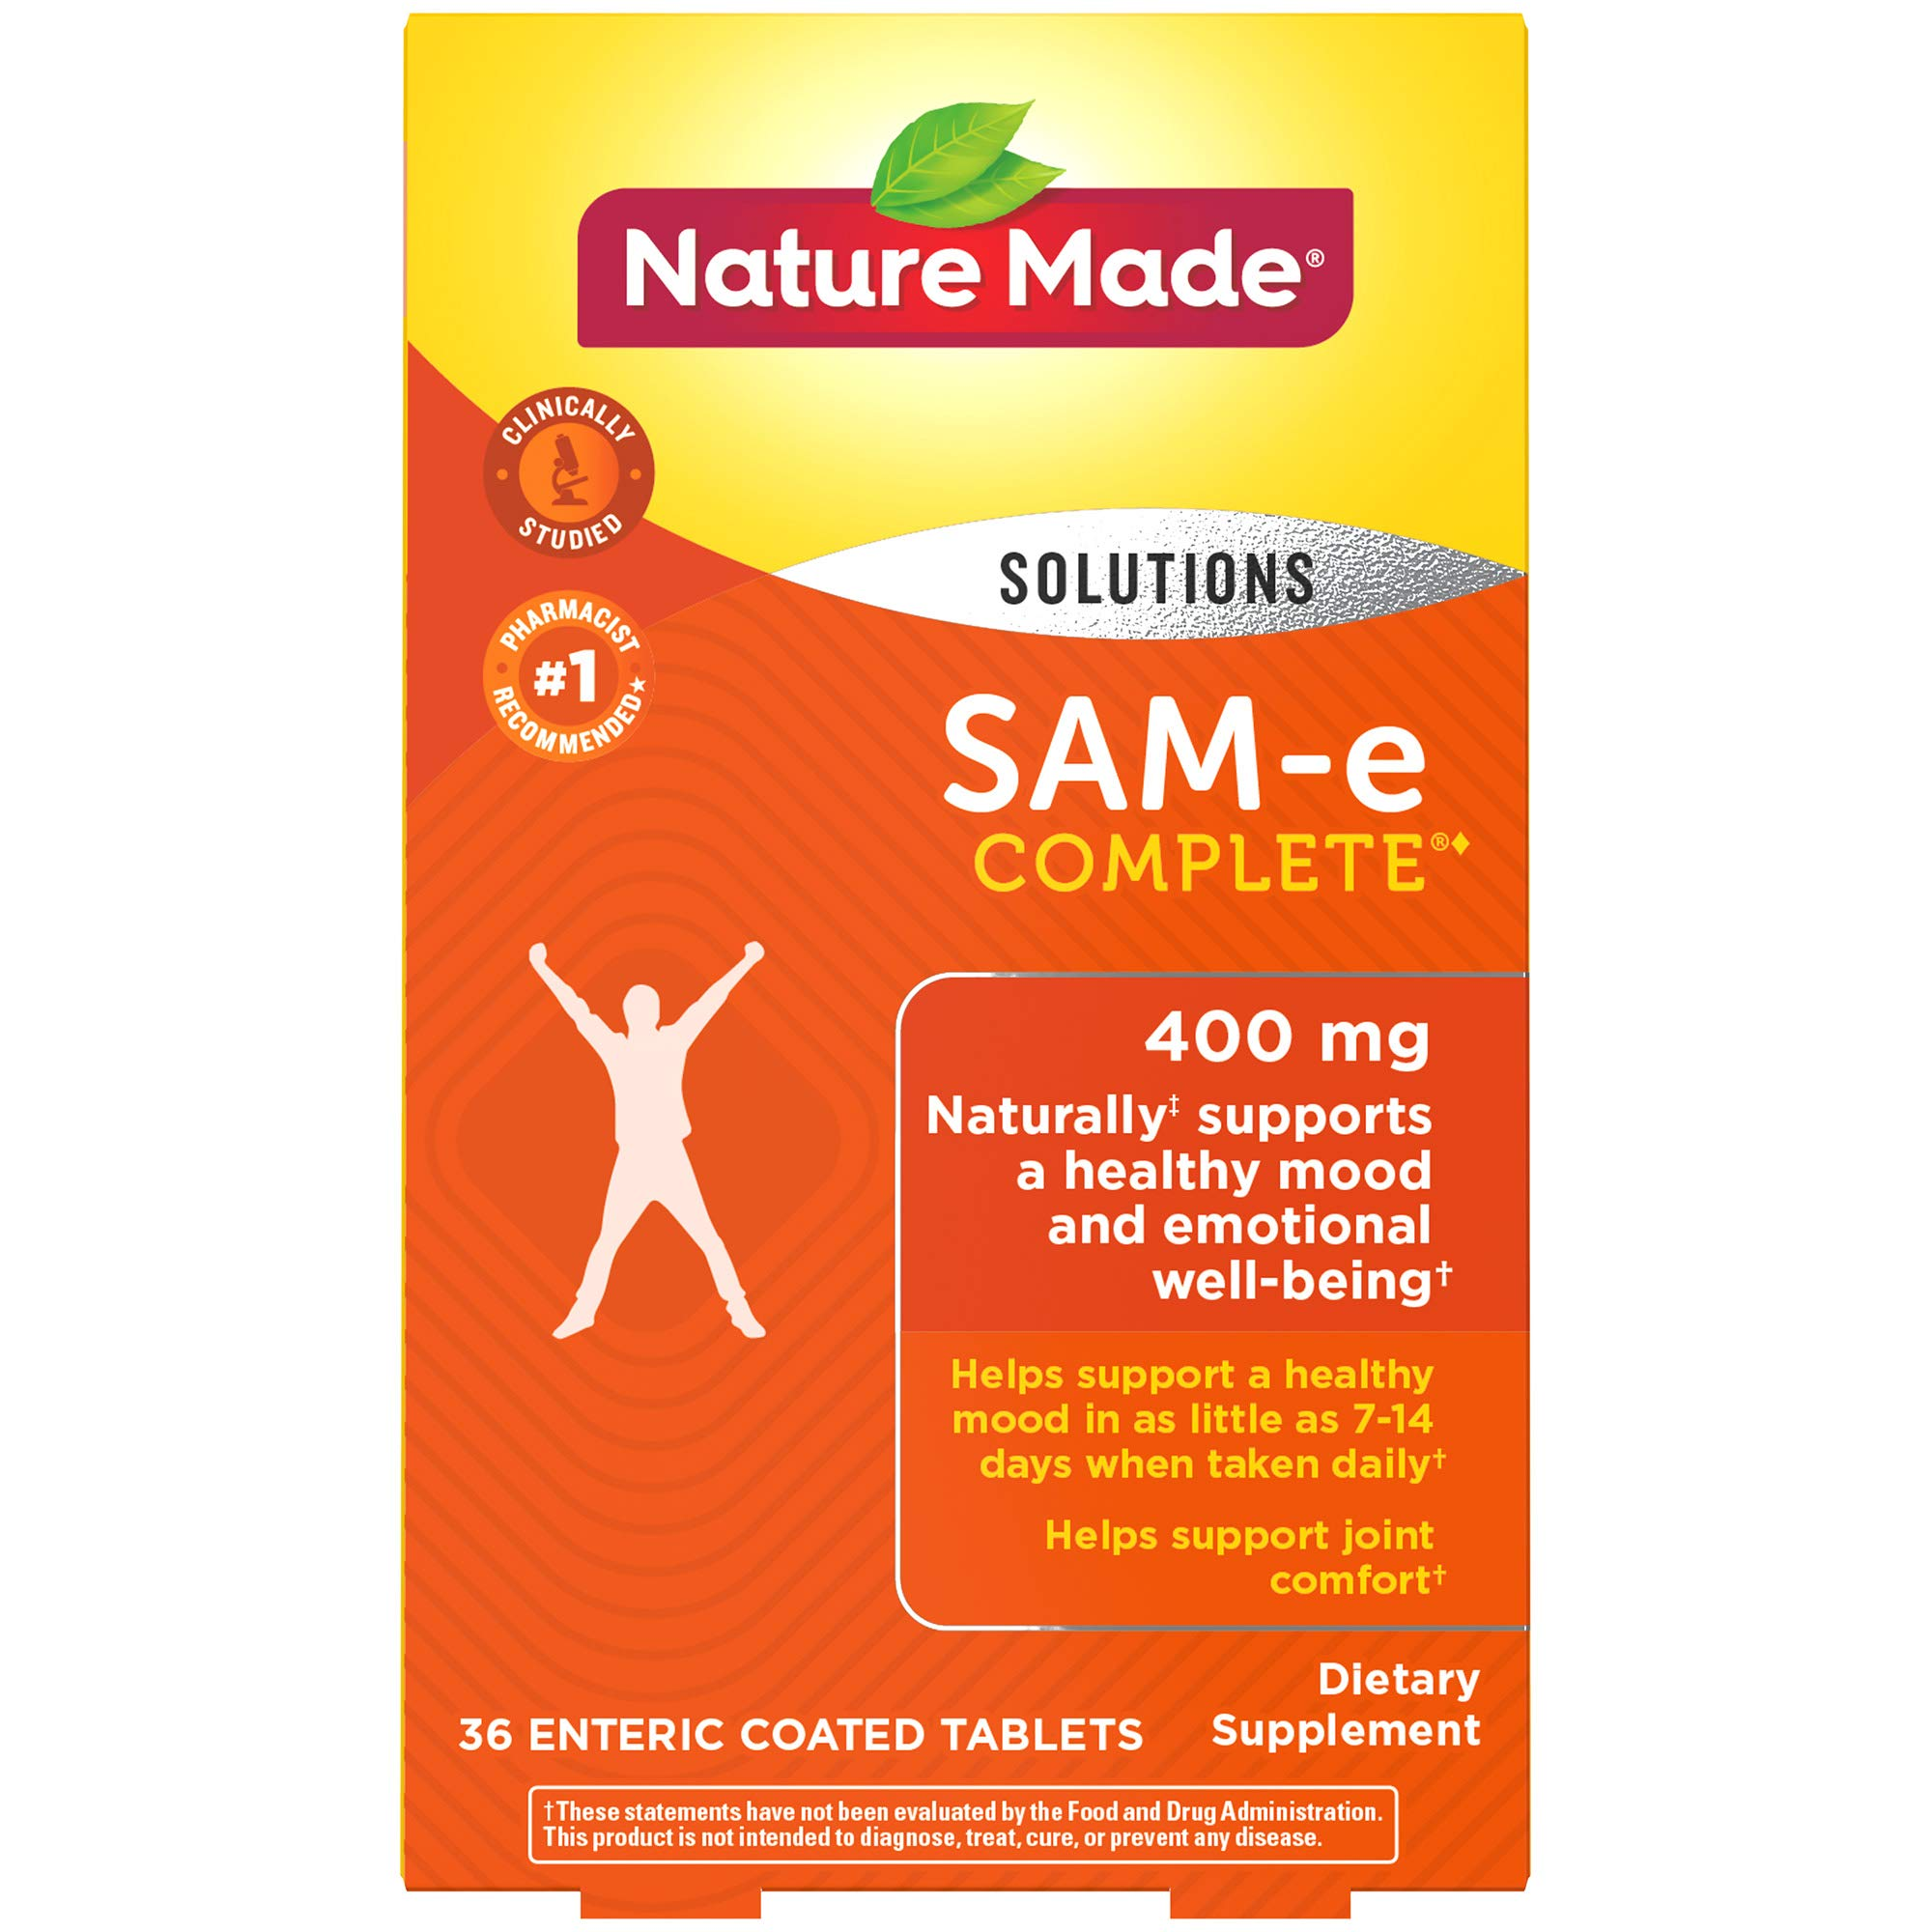 Nature Made SAM-e Complete 400 mg Tablets, 36 Count, Supports a Healthy Mood† (Packaging May Vary) by Nature Made